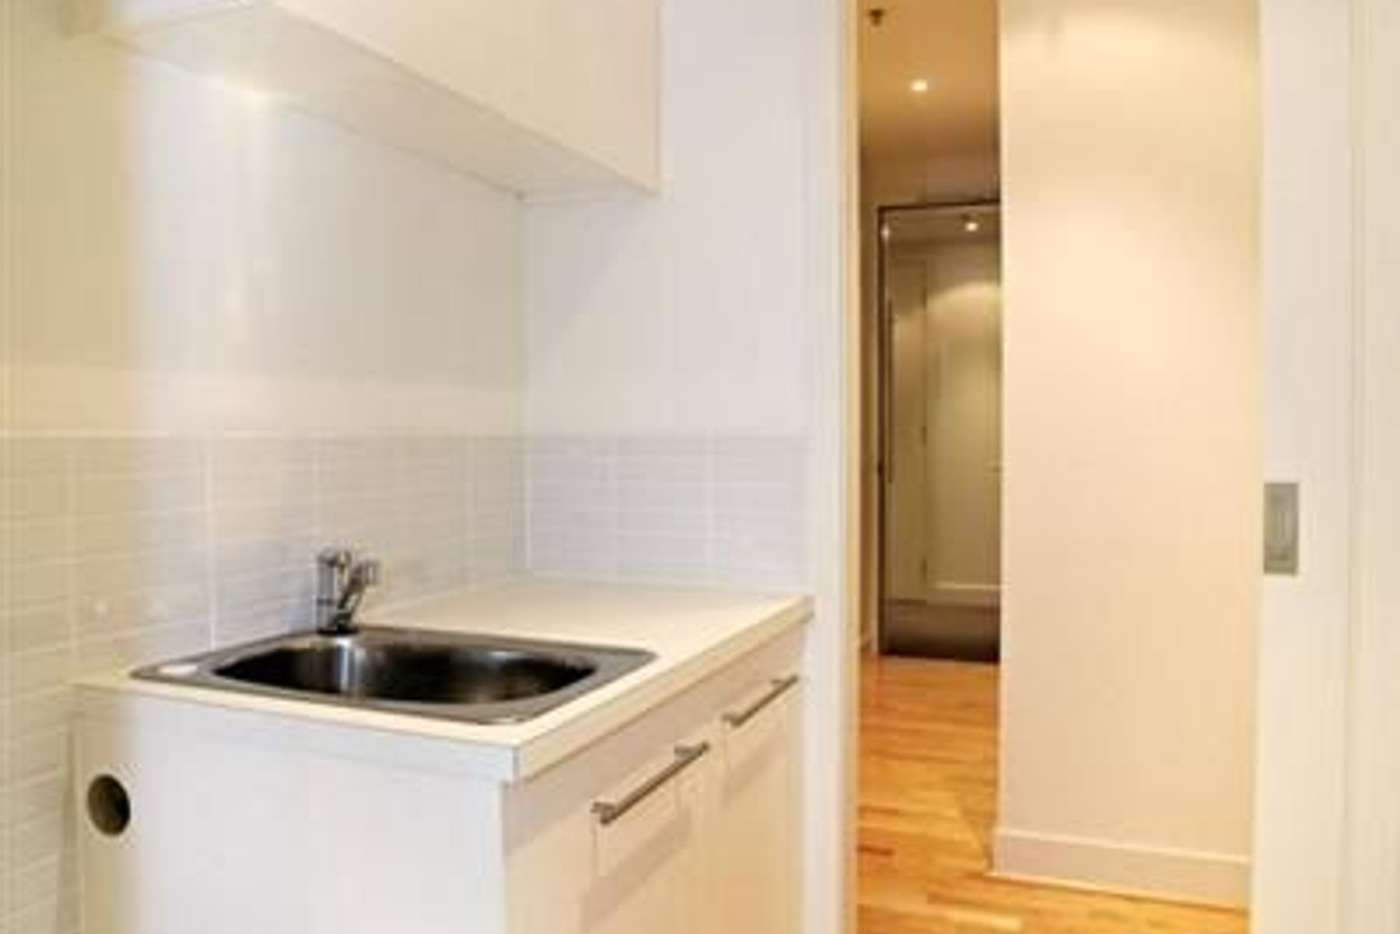 Sixth view of Homely unit listing, 22/243 Collins Street, Melbourne VIC 3000